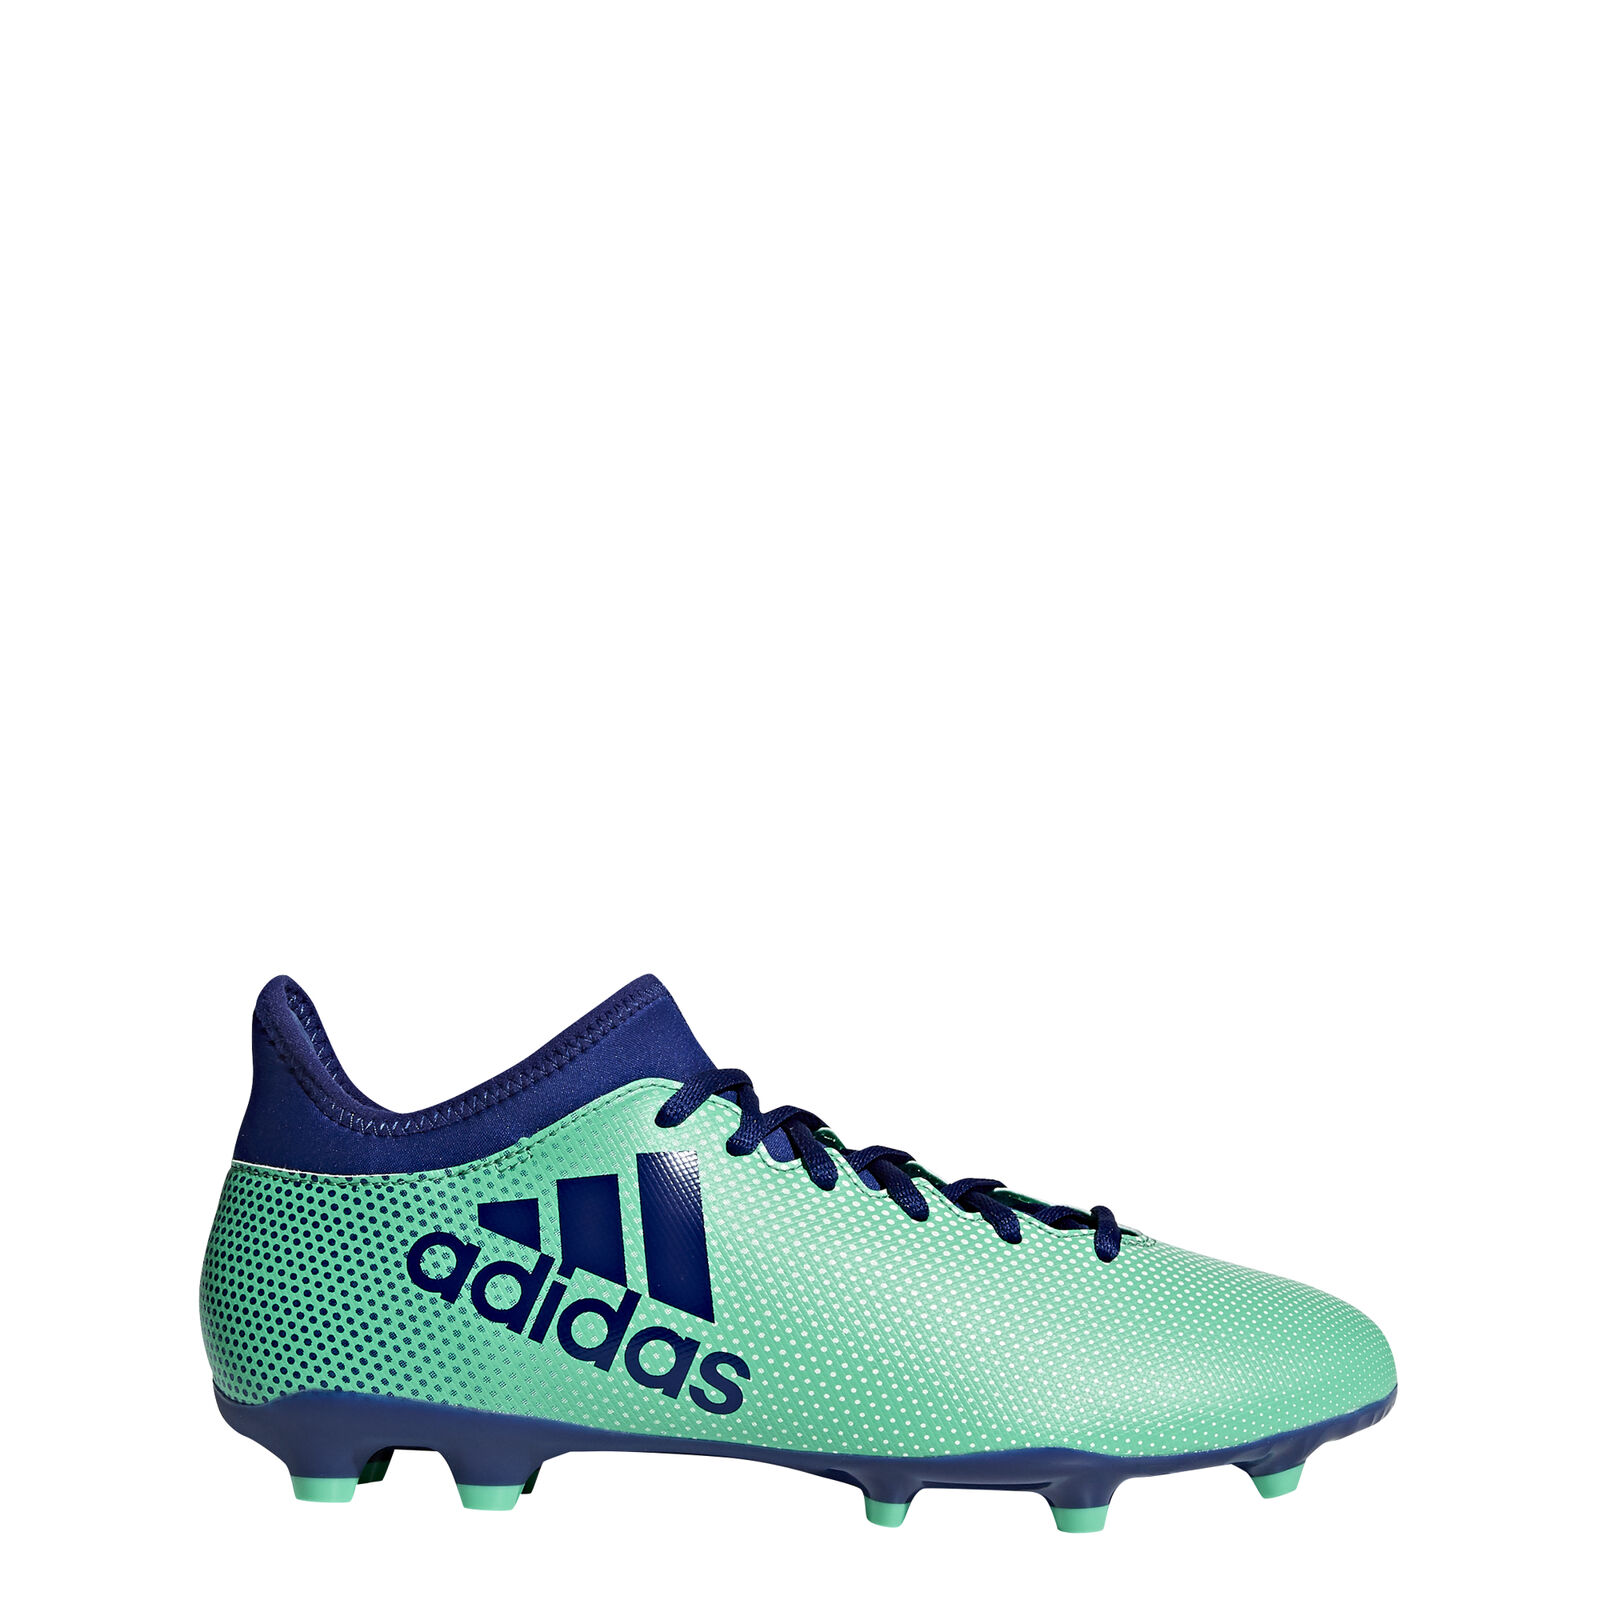 Adidas Football Boots x 17.3 Fg Men's Cam Football shoes